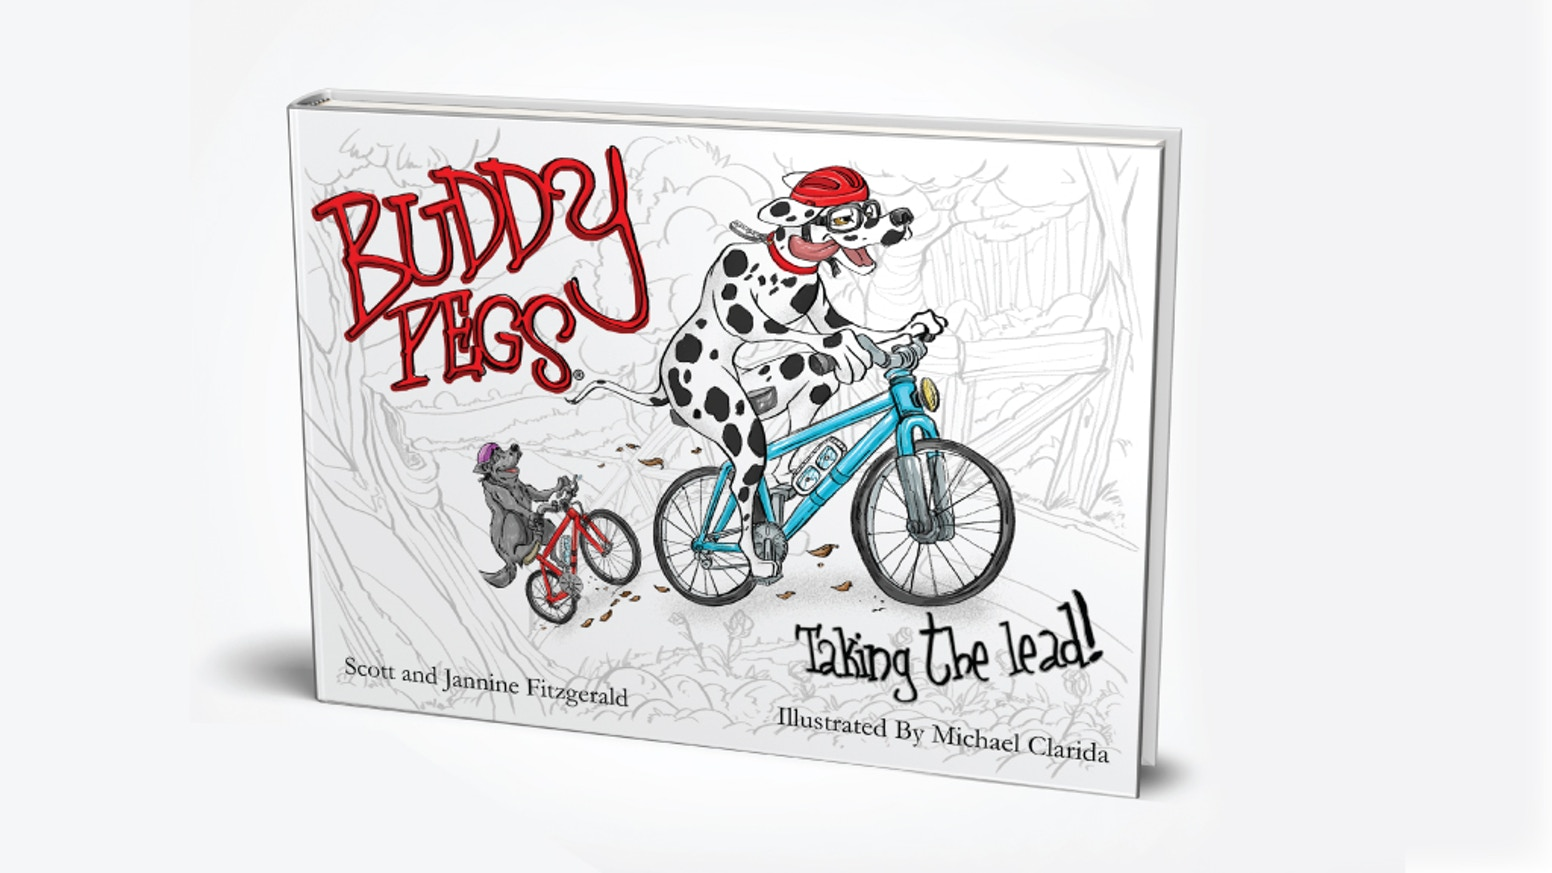 """You still can get a copy of Buddy Pegs Taking The Lead by clicking the link below. PLUS, follow our characters' ongoing adventures in children's storytelling PODCAST """"The World of Buddy Pegs"""". Find it on iTunes, Sticher, or our website (buddypegs.com)."""